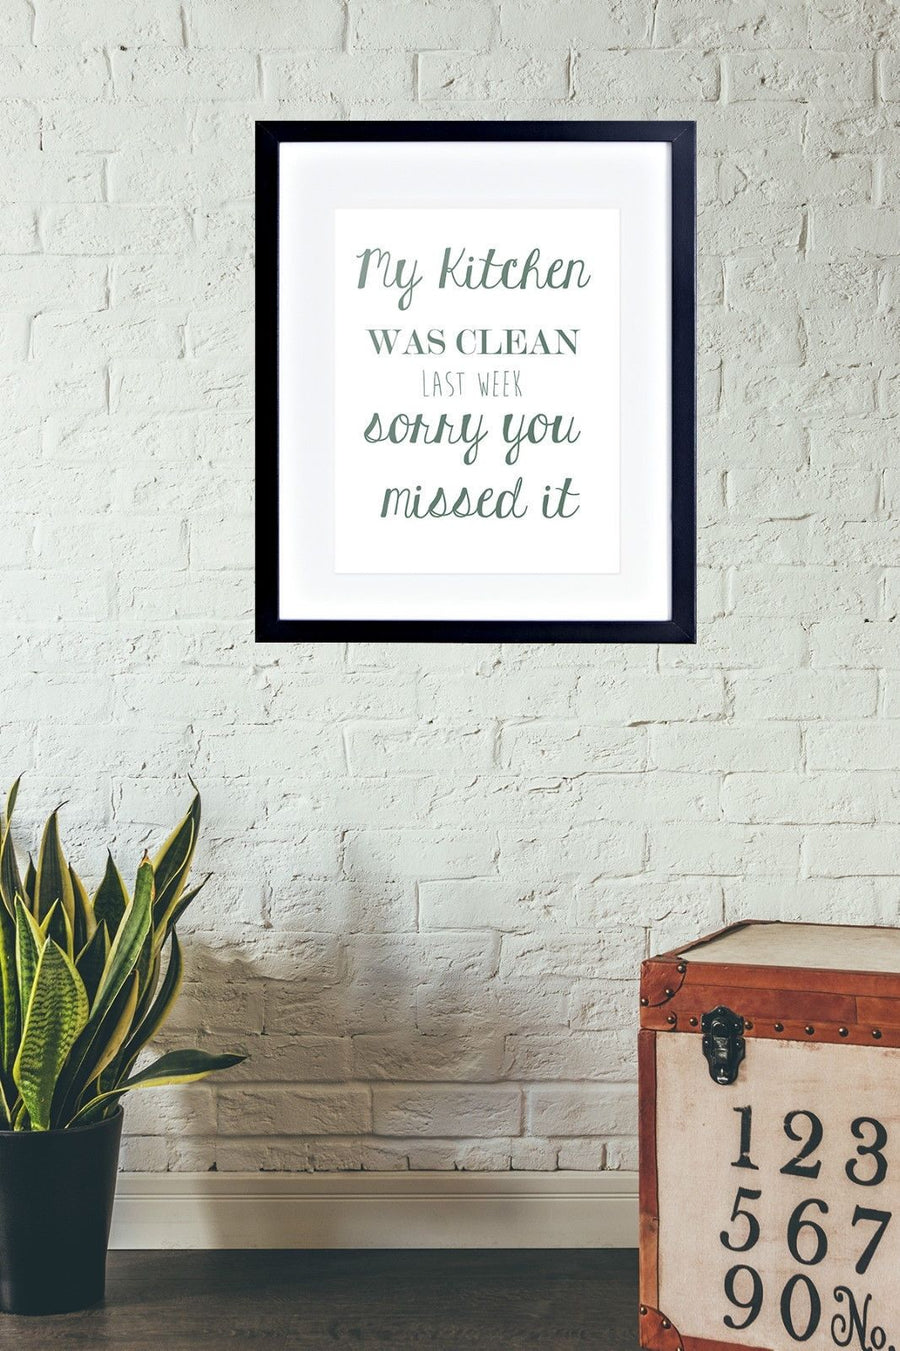 Funny Clean Kitchen Picture Messy Poster Framed + Mounted Food Picture Photo 204